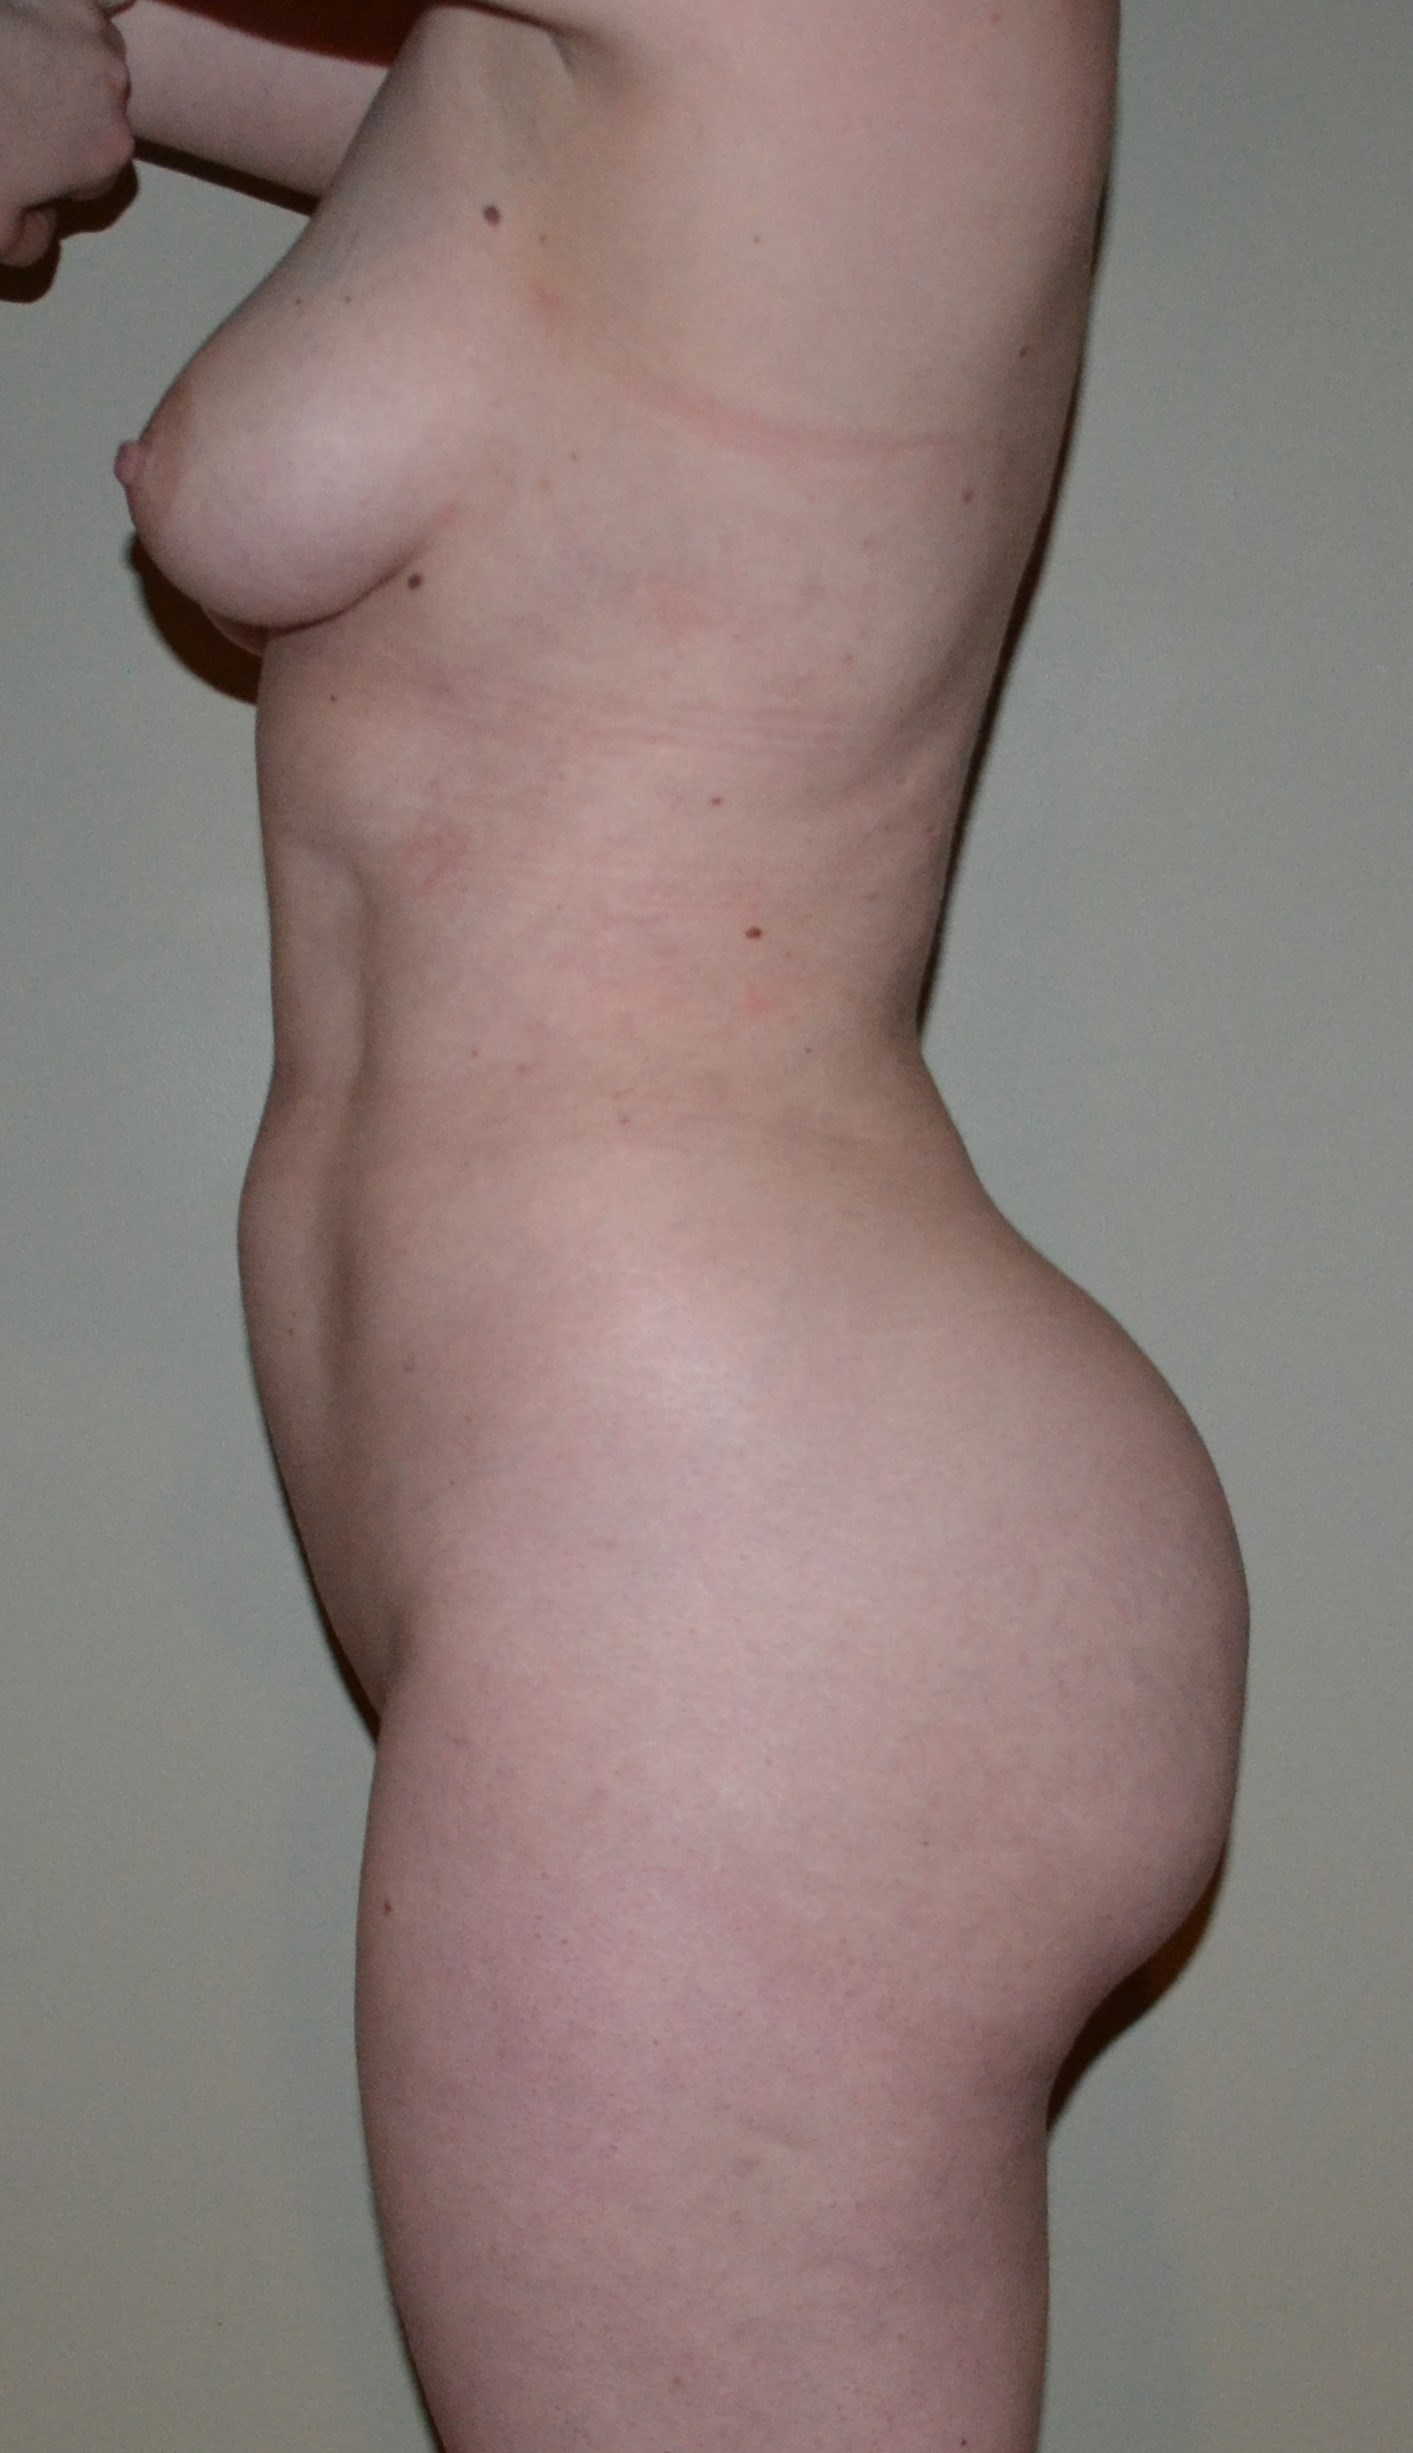 VASER Hi Def Lipo and BBL After, 8 months post surgery